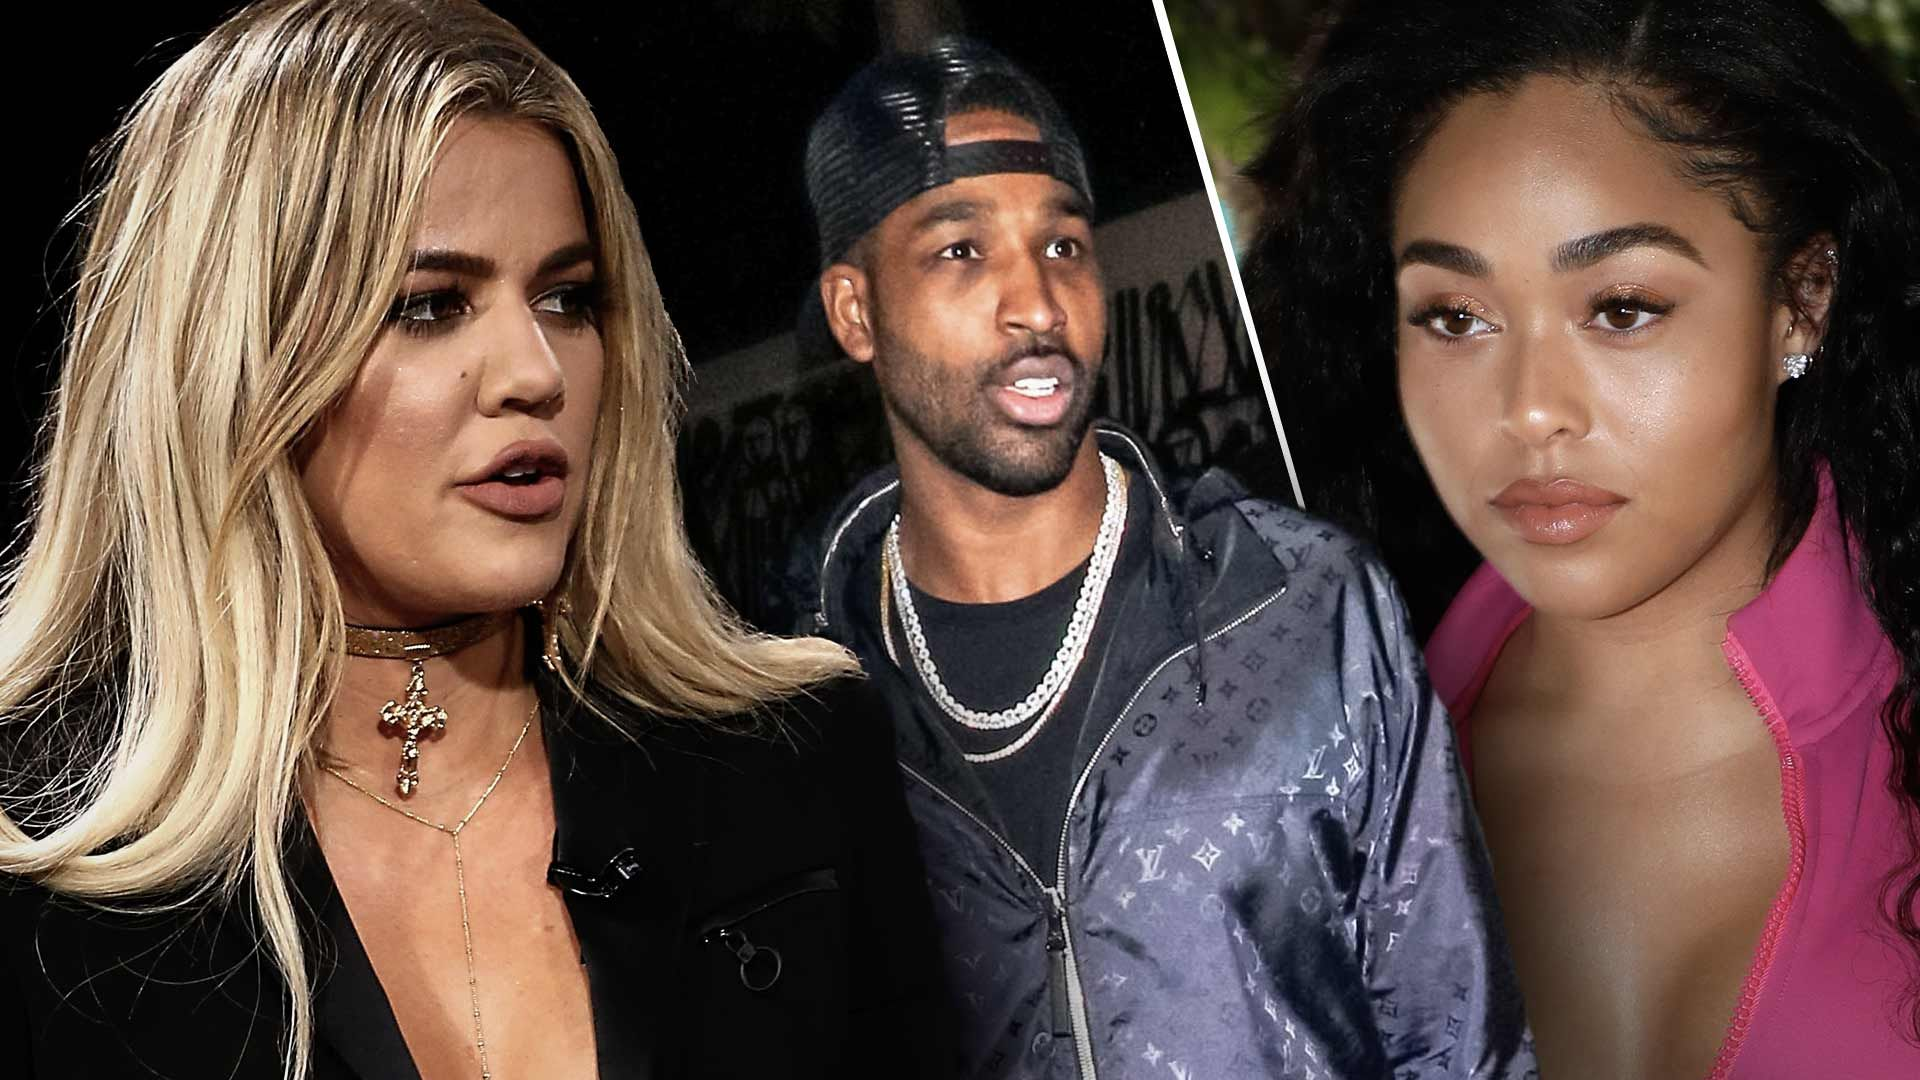 Khloé Kardashian Changes Her Tune, Blames Tristan Thompson for Cheating  Scandal: 'This Was Tristan's Fault'